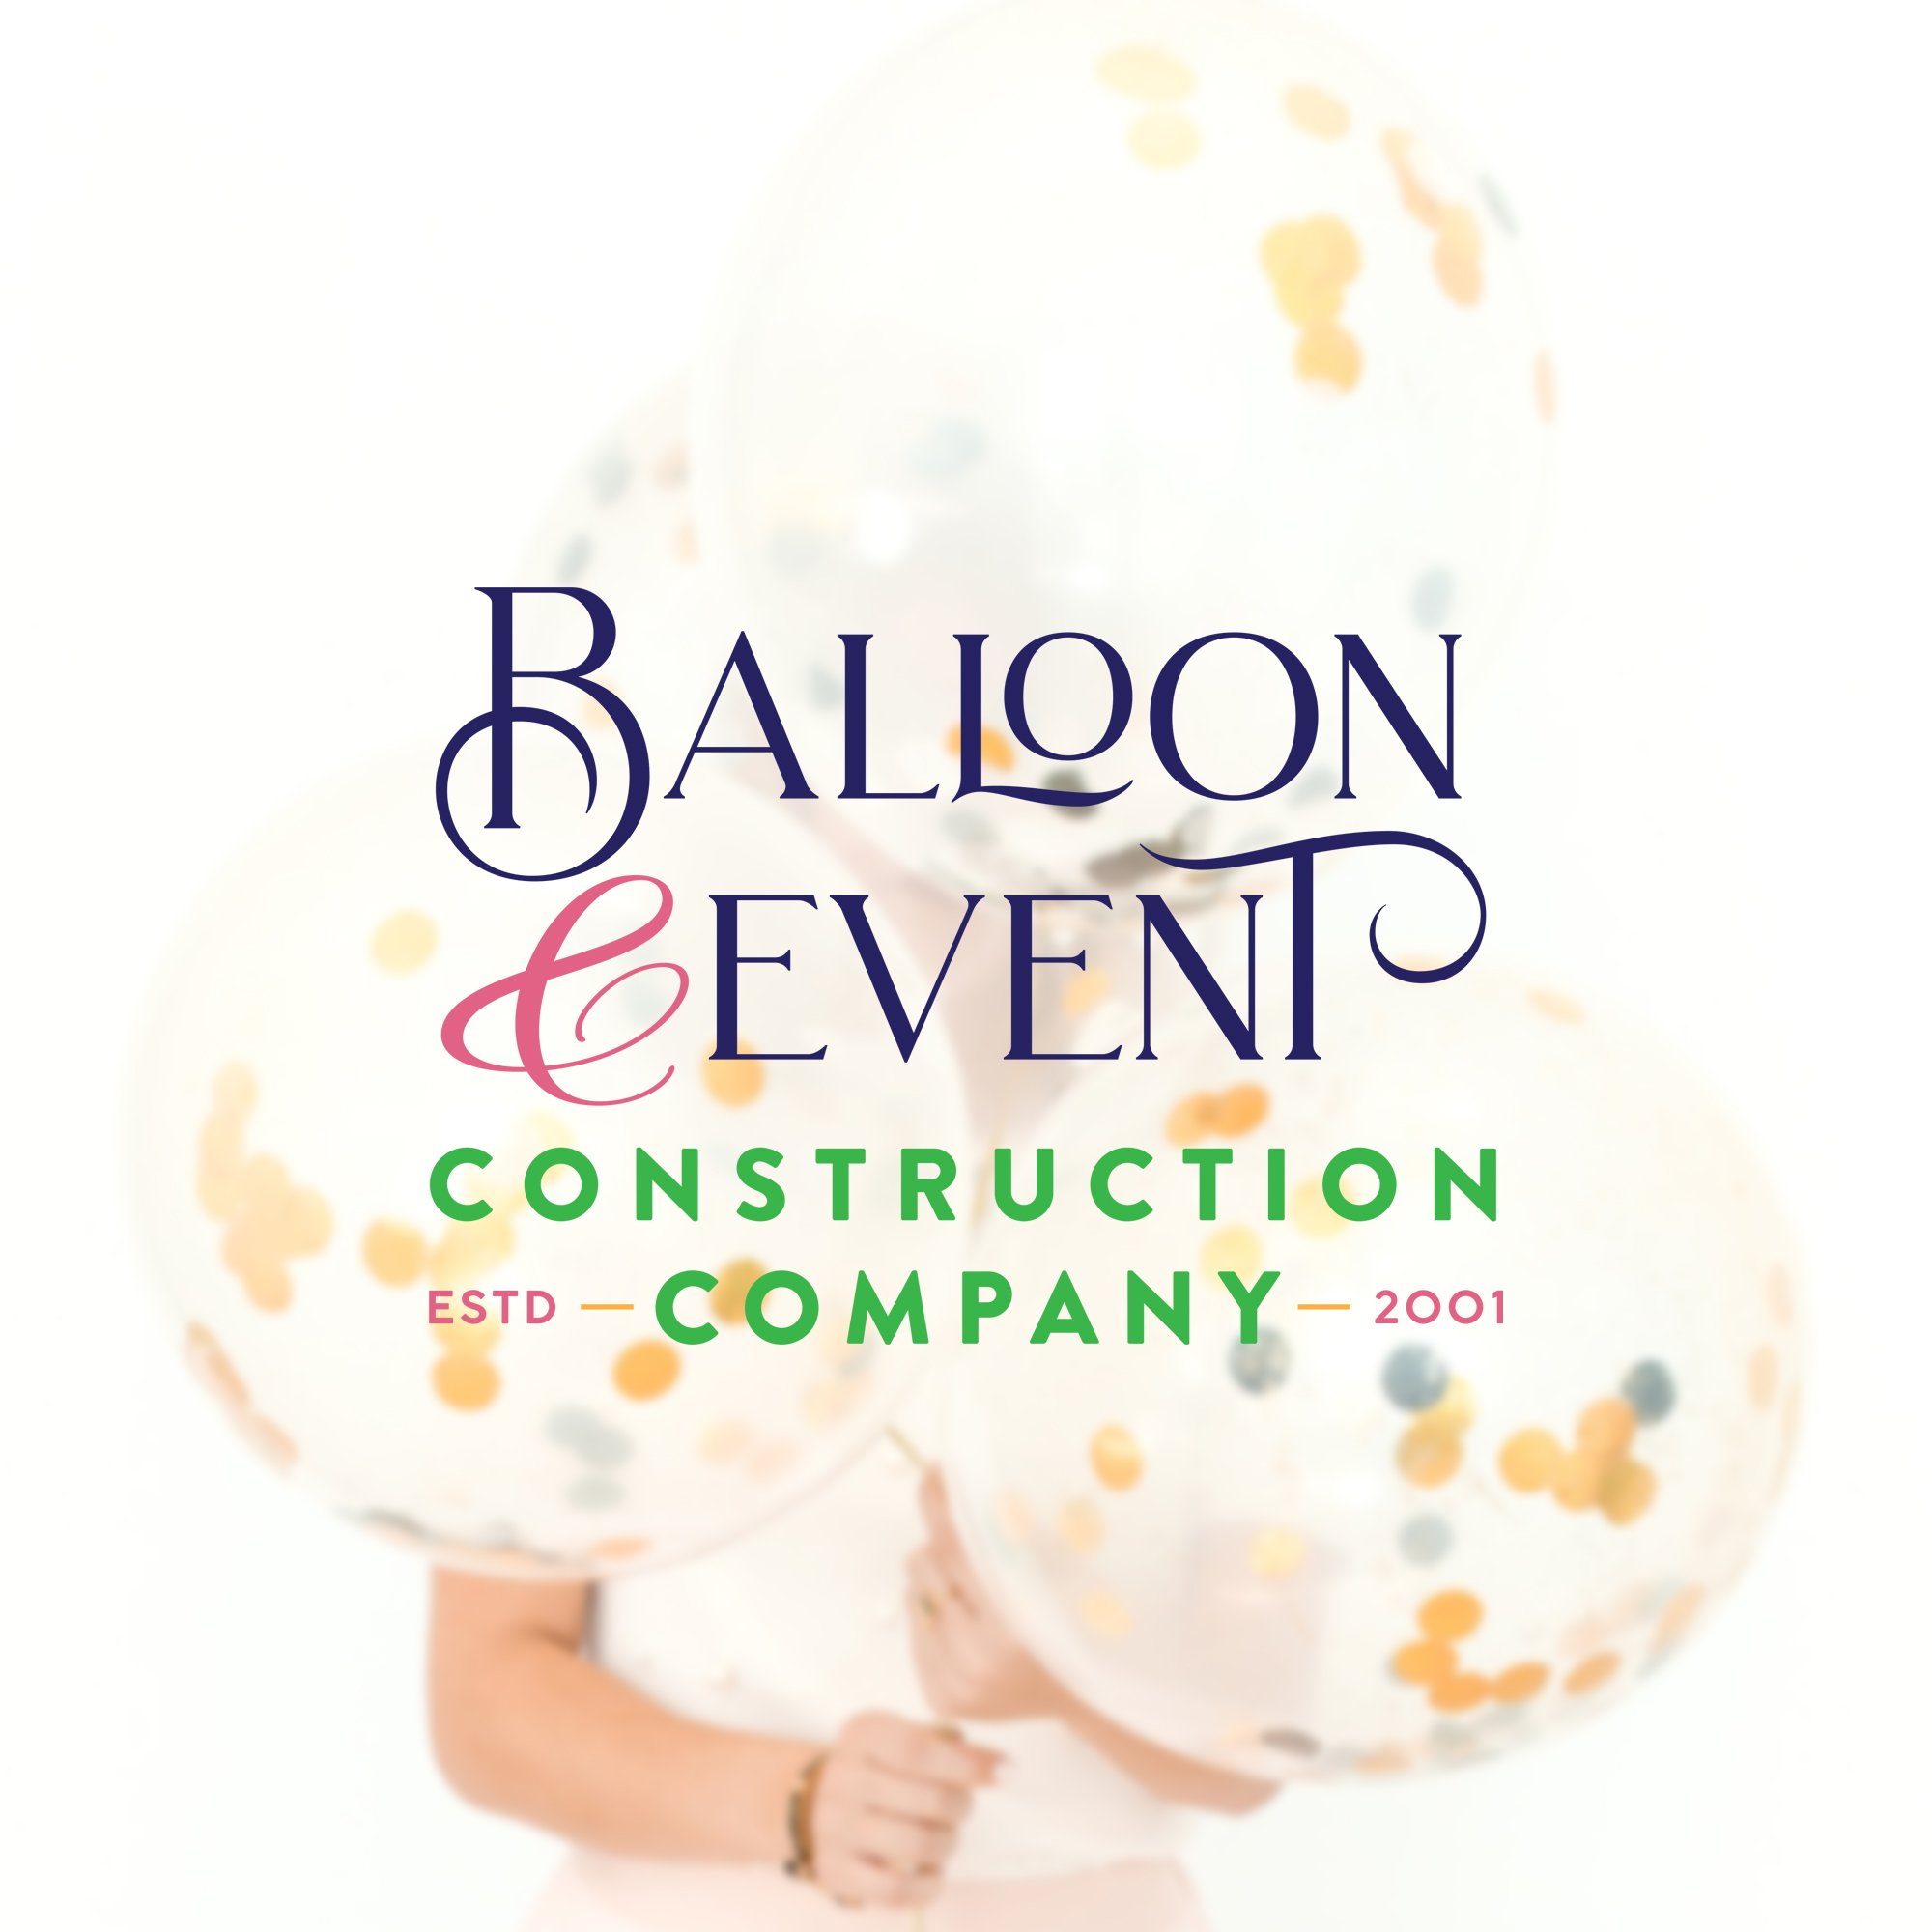 logo design for Balloon & Event Construction Company by Fancy Girl Design Studio